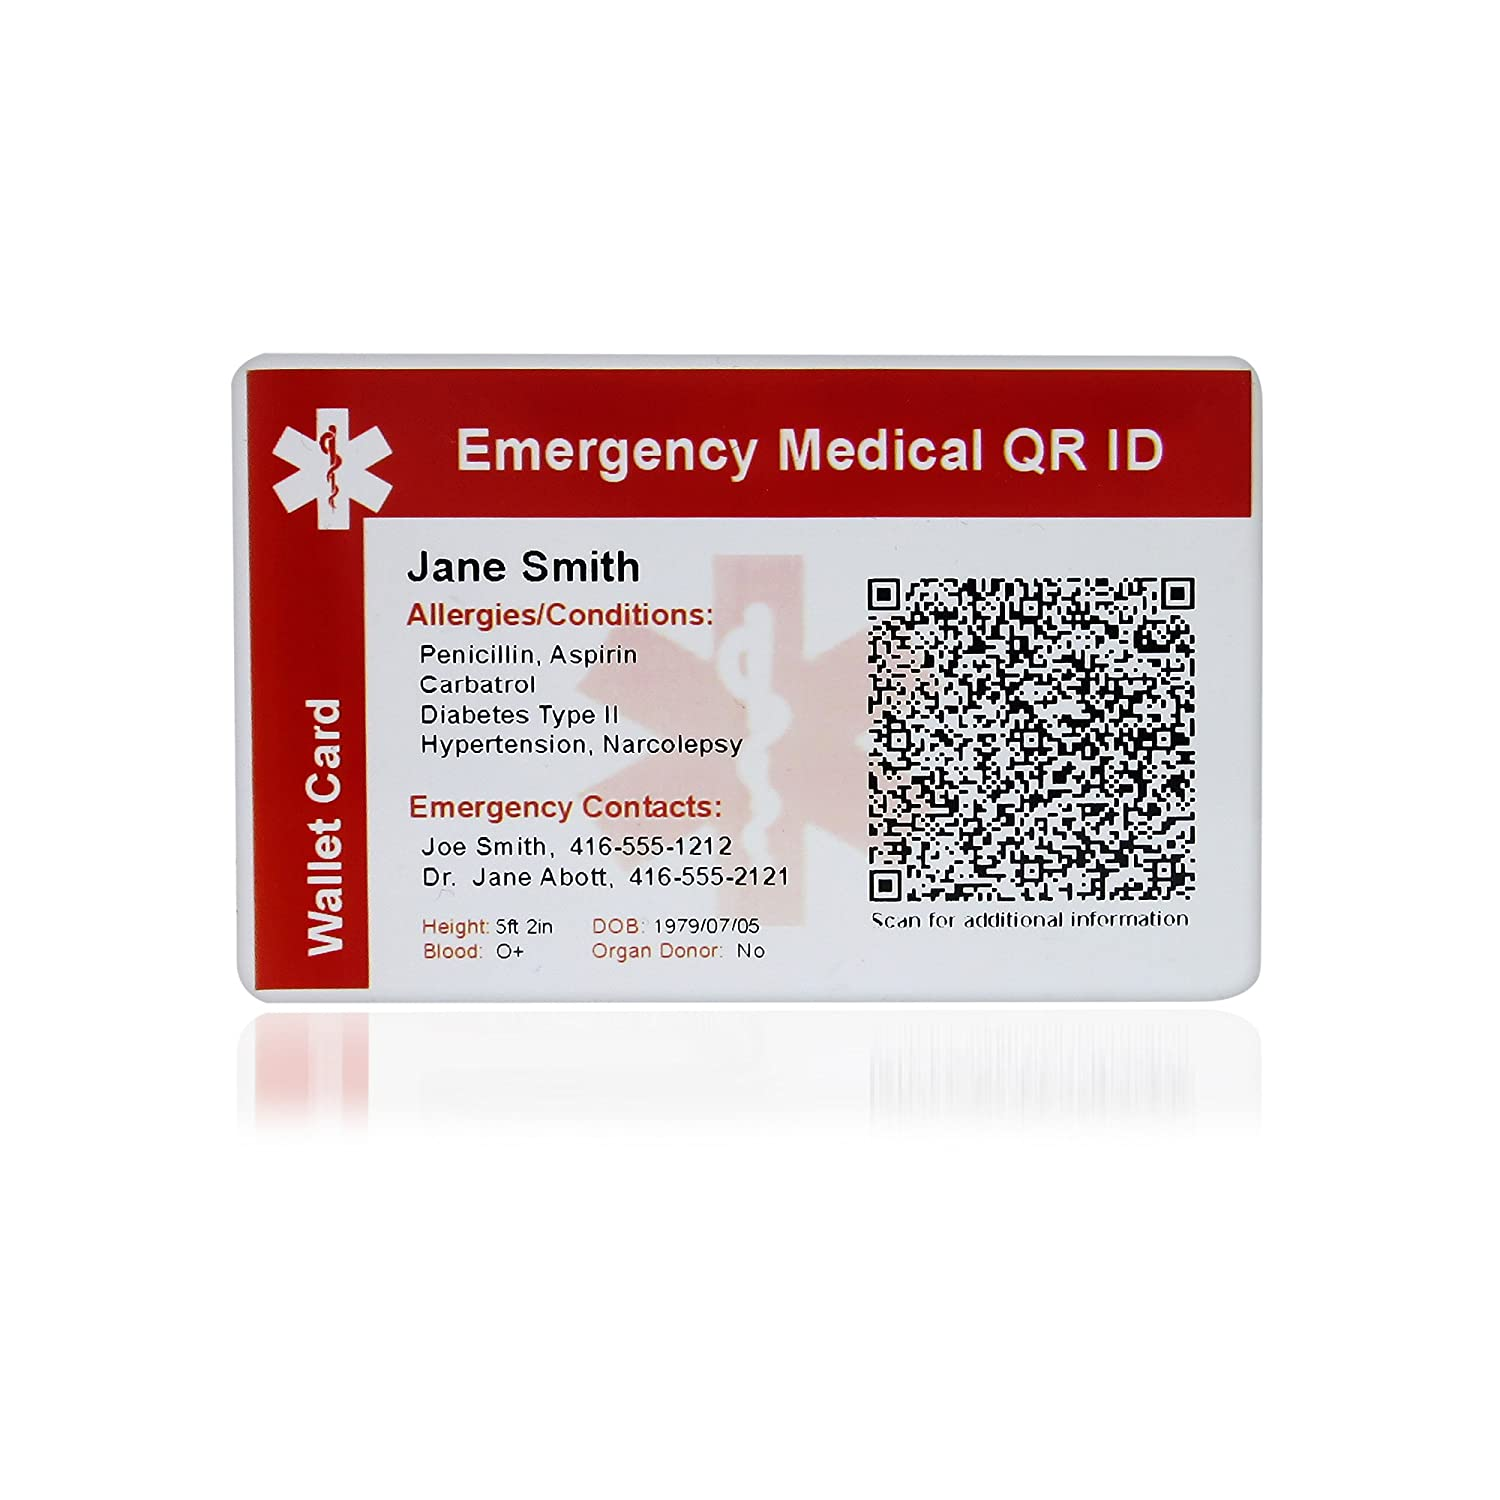 MedicEngraved Emergency Medical QR ID Card - PVC Plastic Wallet Card - Fully customized QR encoding included QR-CARD